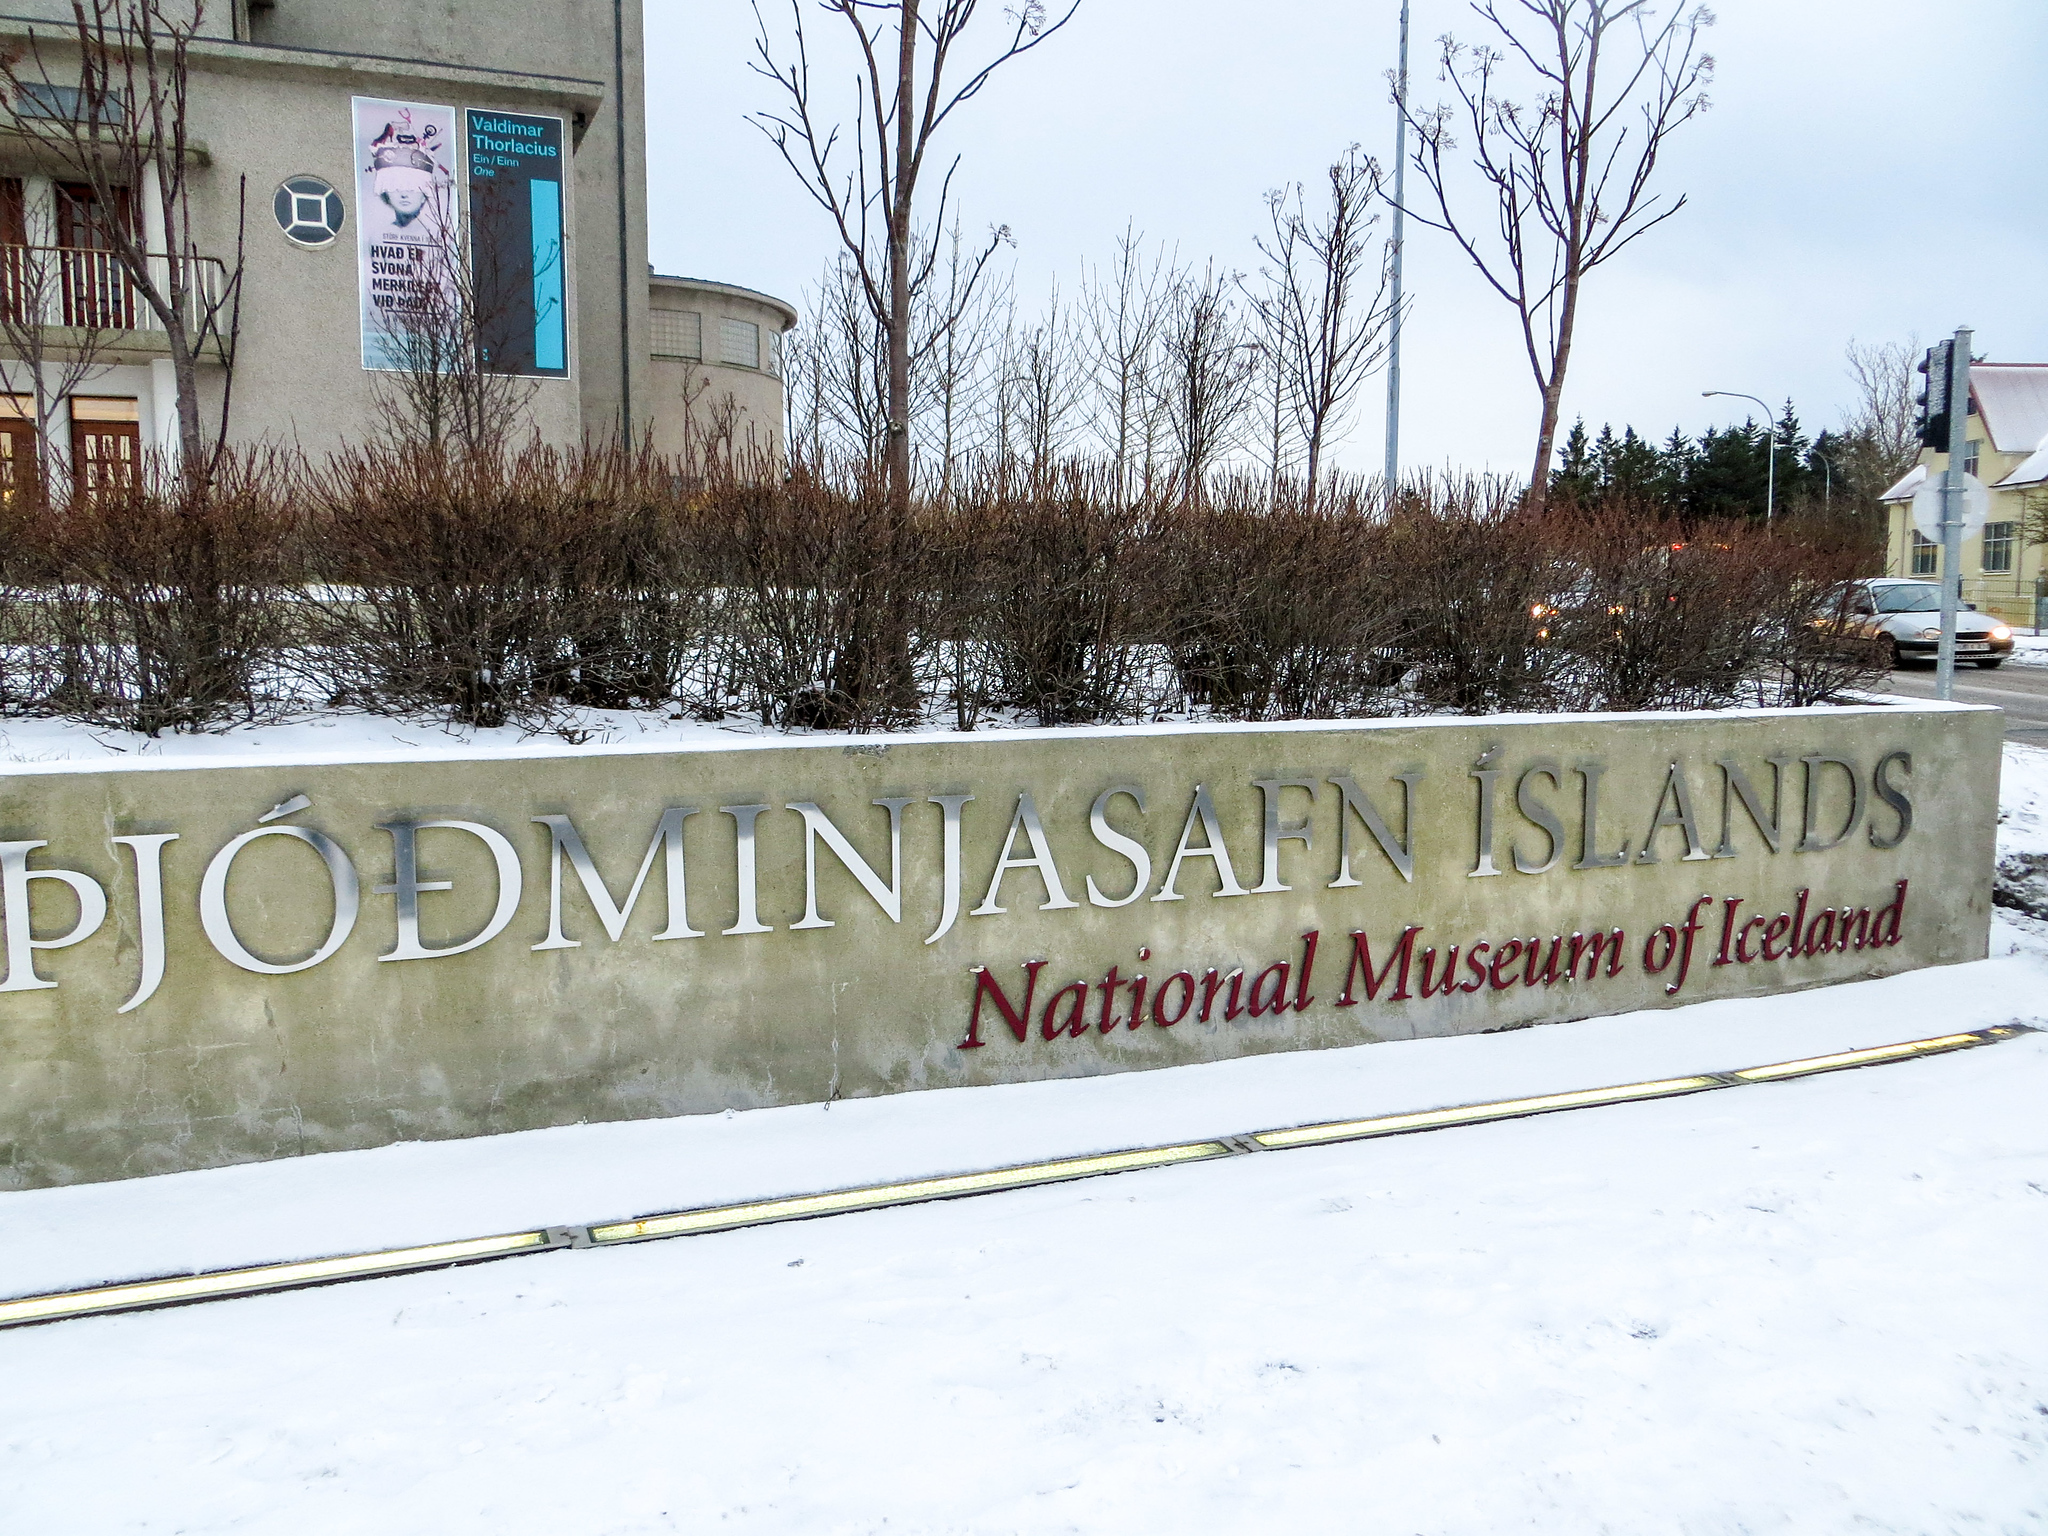 traveling alone to iceland gives you a chance to visit many incredible museums